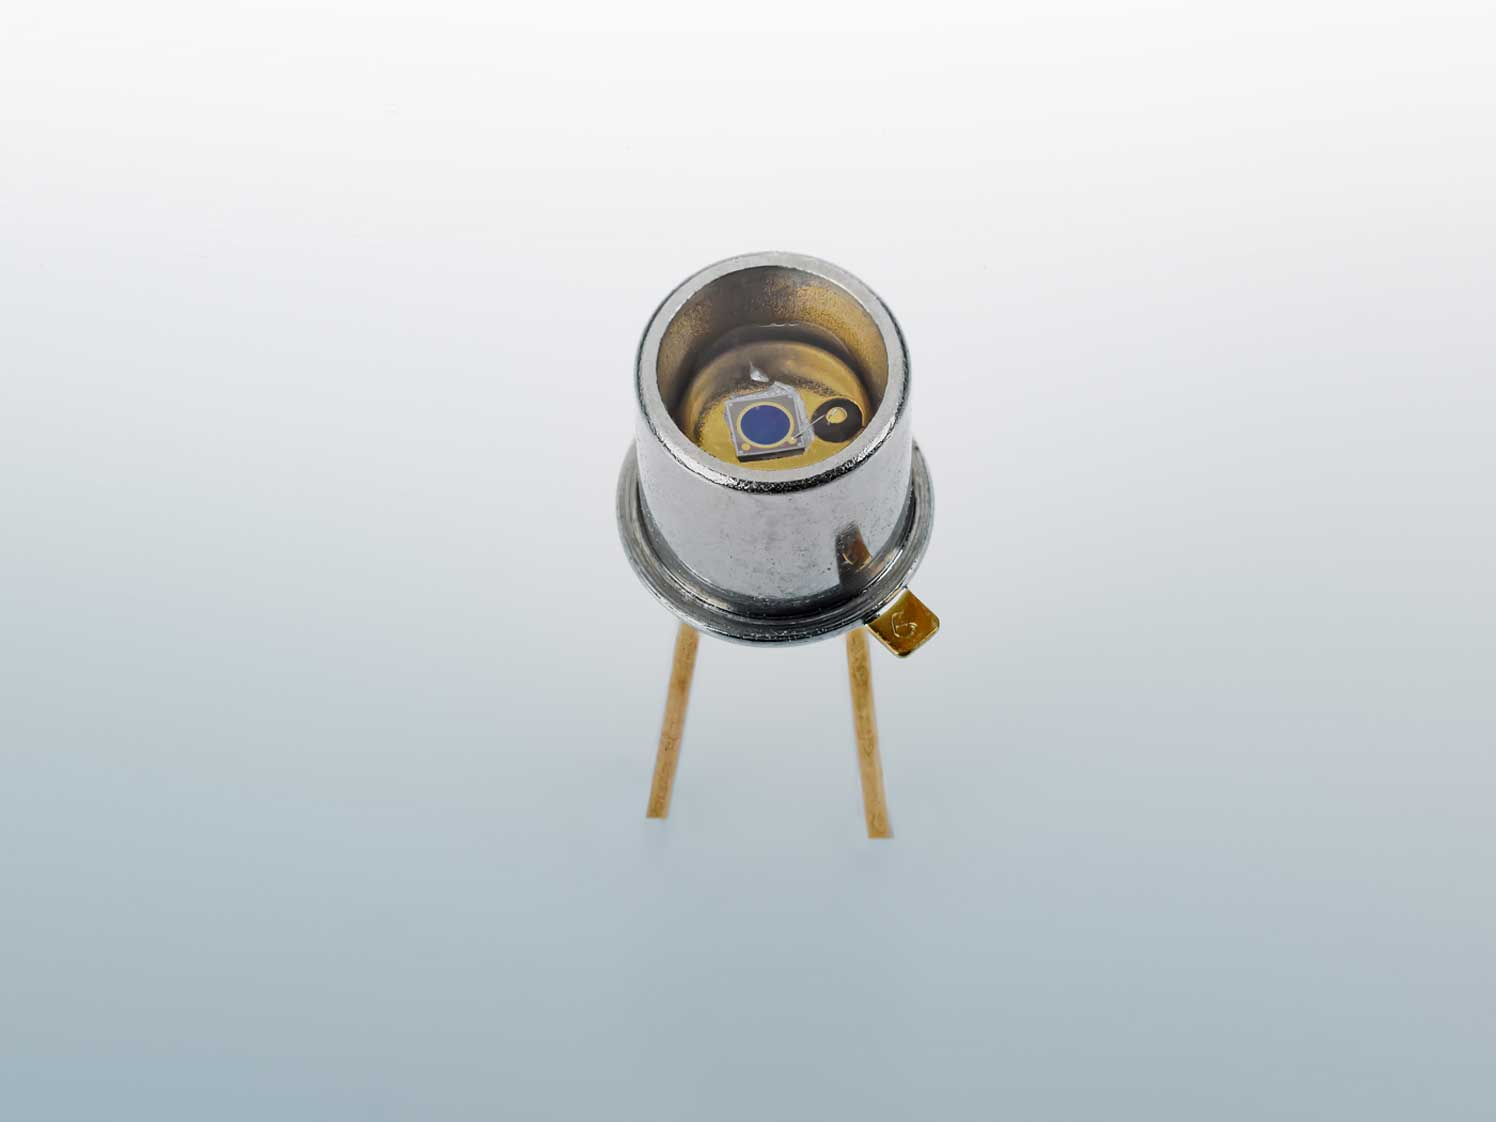 Photodiodes from Jenoptik: photodiodes for spectrally selective light and radiation detection